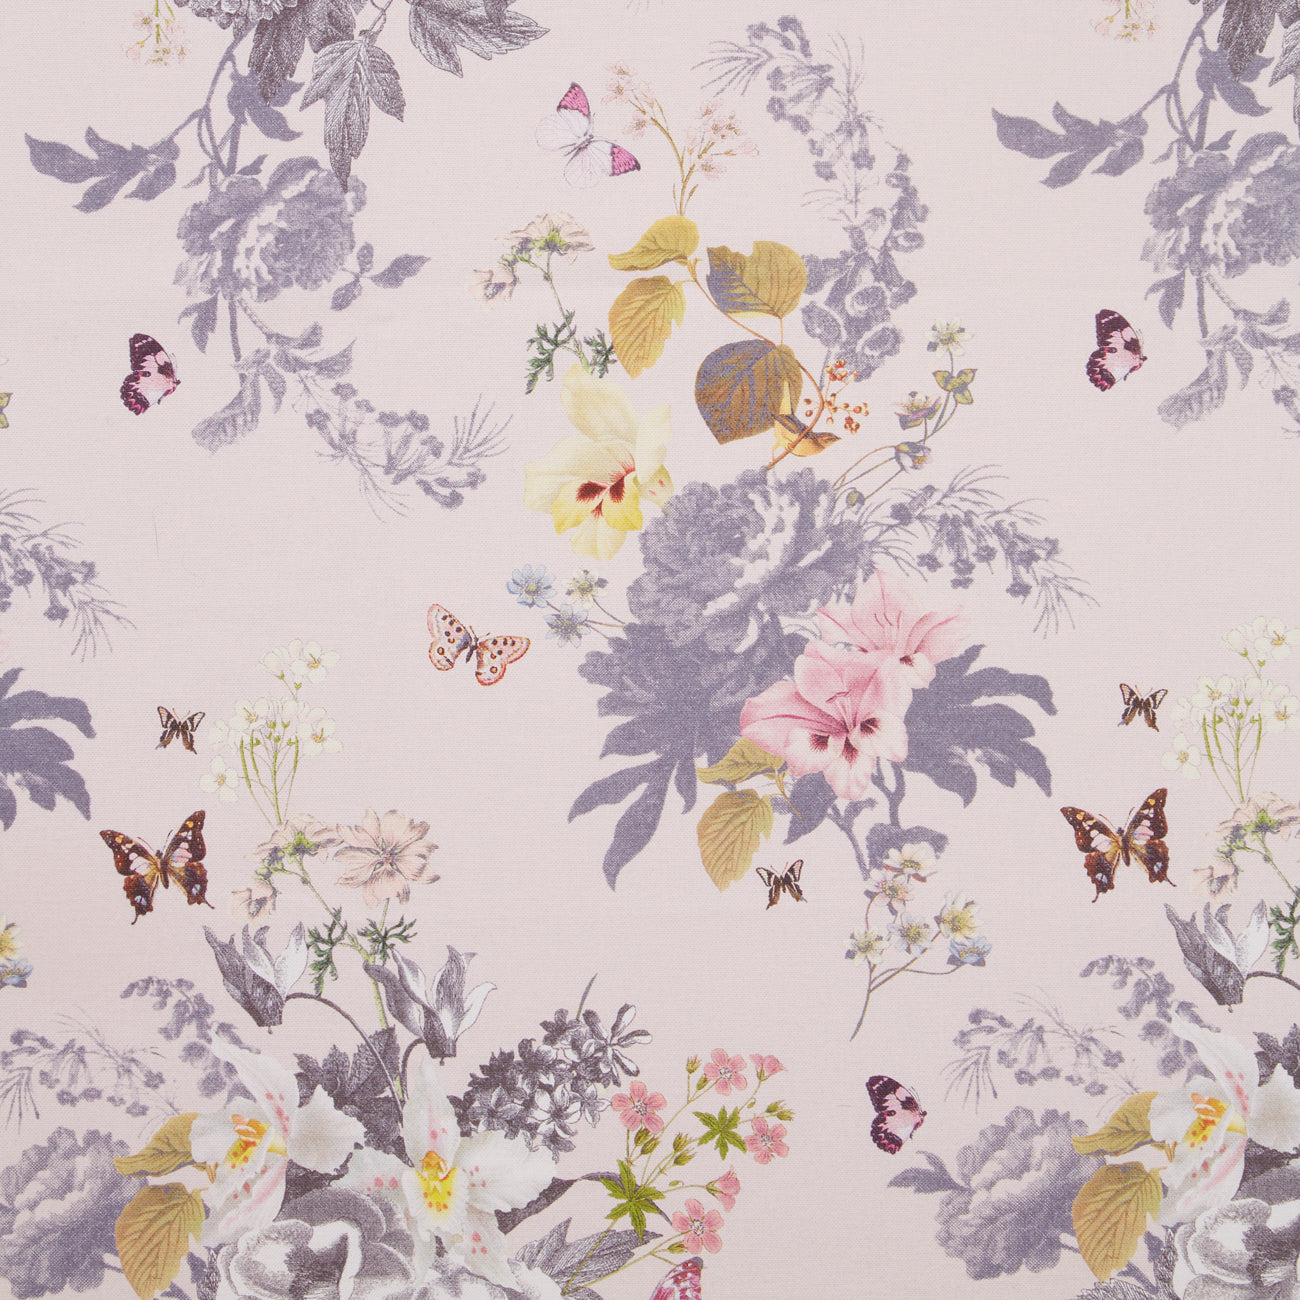 Botanical Oasis Designer Floral & Butterfly Wallpaper | Blush Pink & White